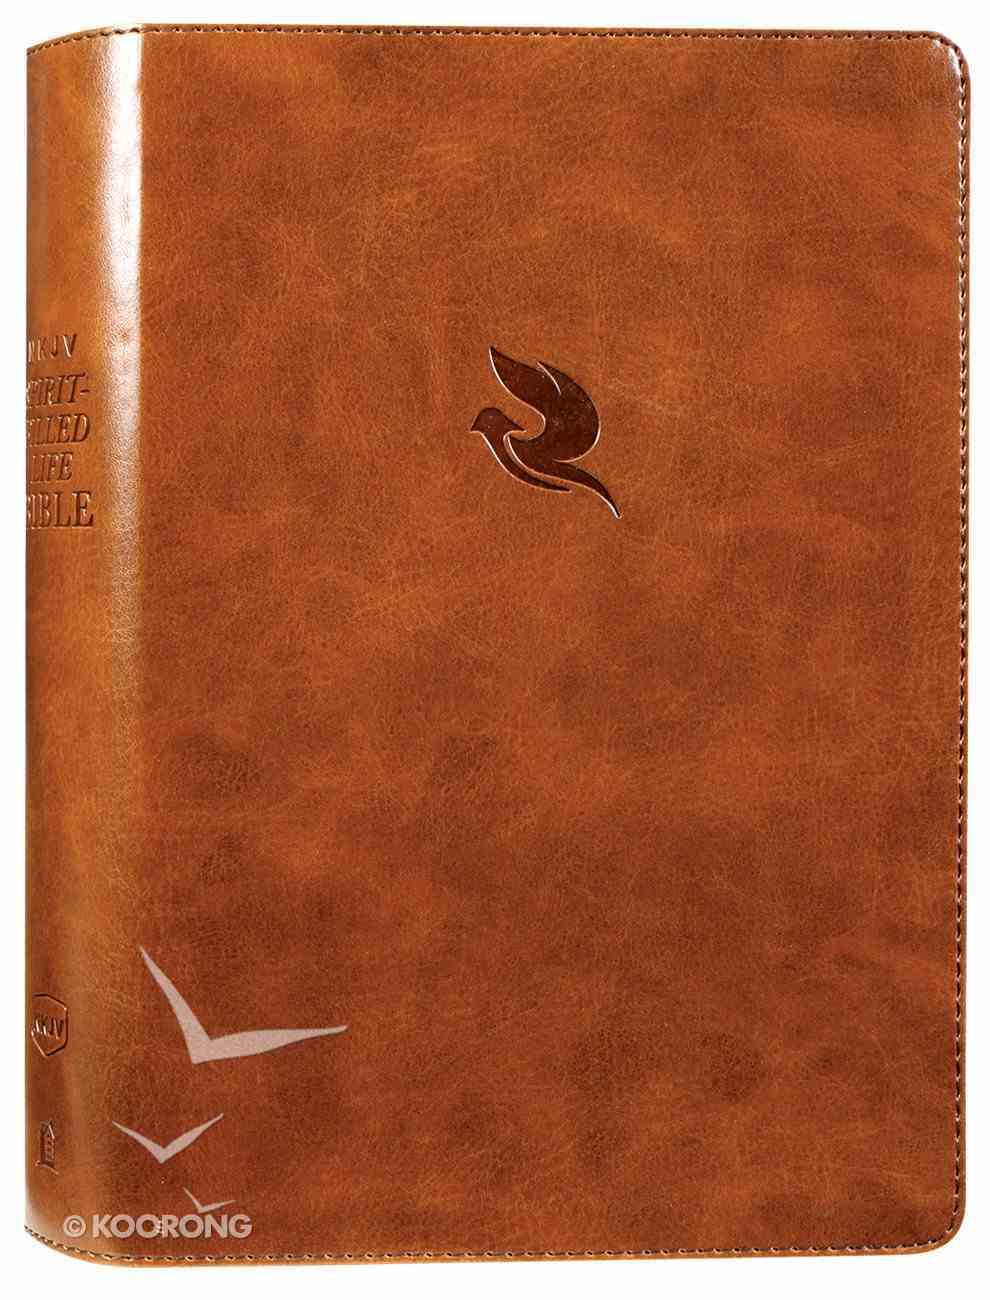 NKJV Spirit-Filled Life Bible Brown (Red Letter Edition) (Third Edition) Premium Imitation Leather